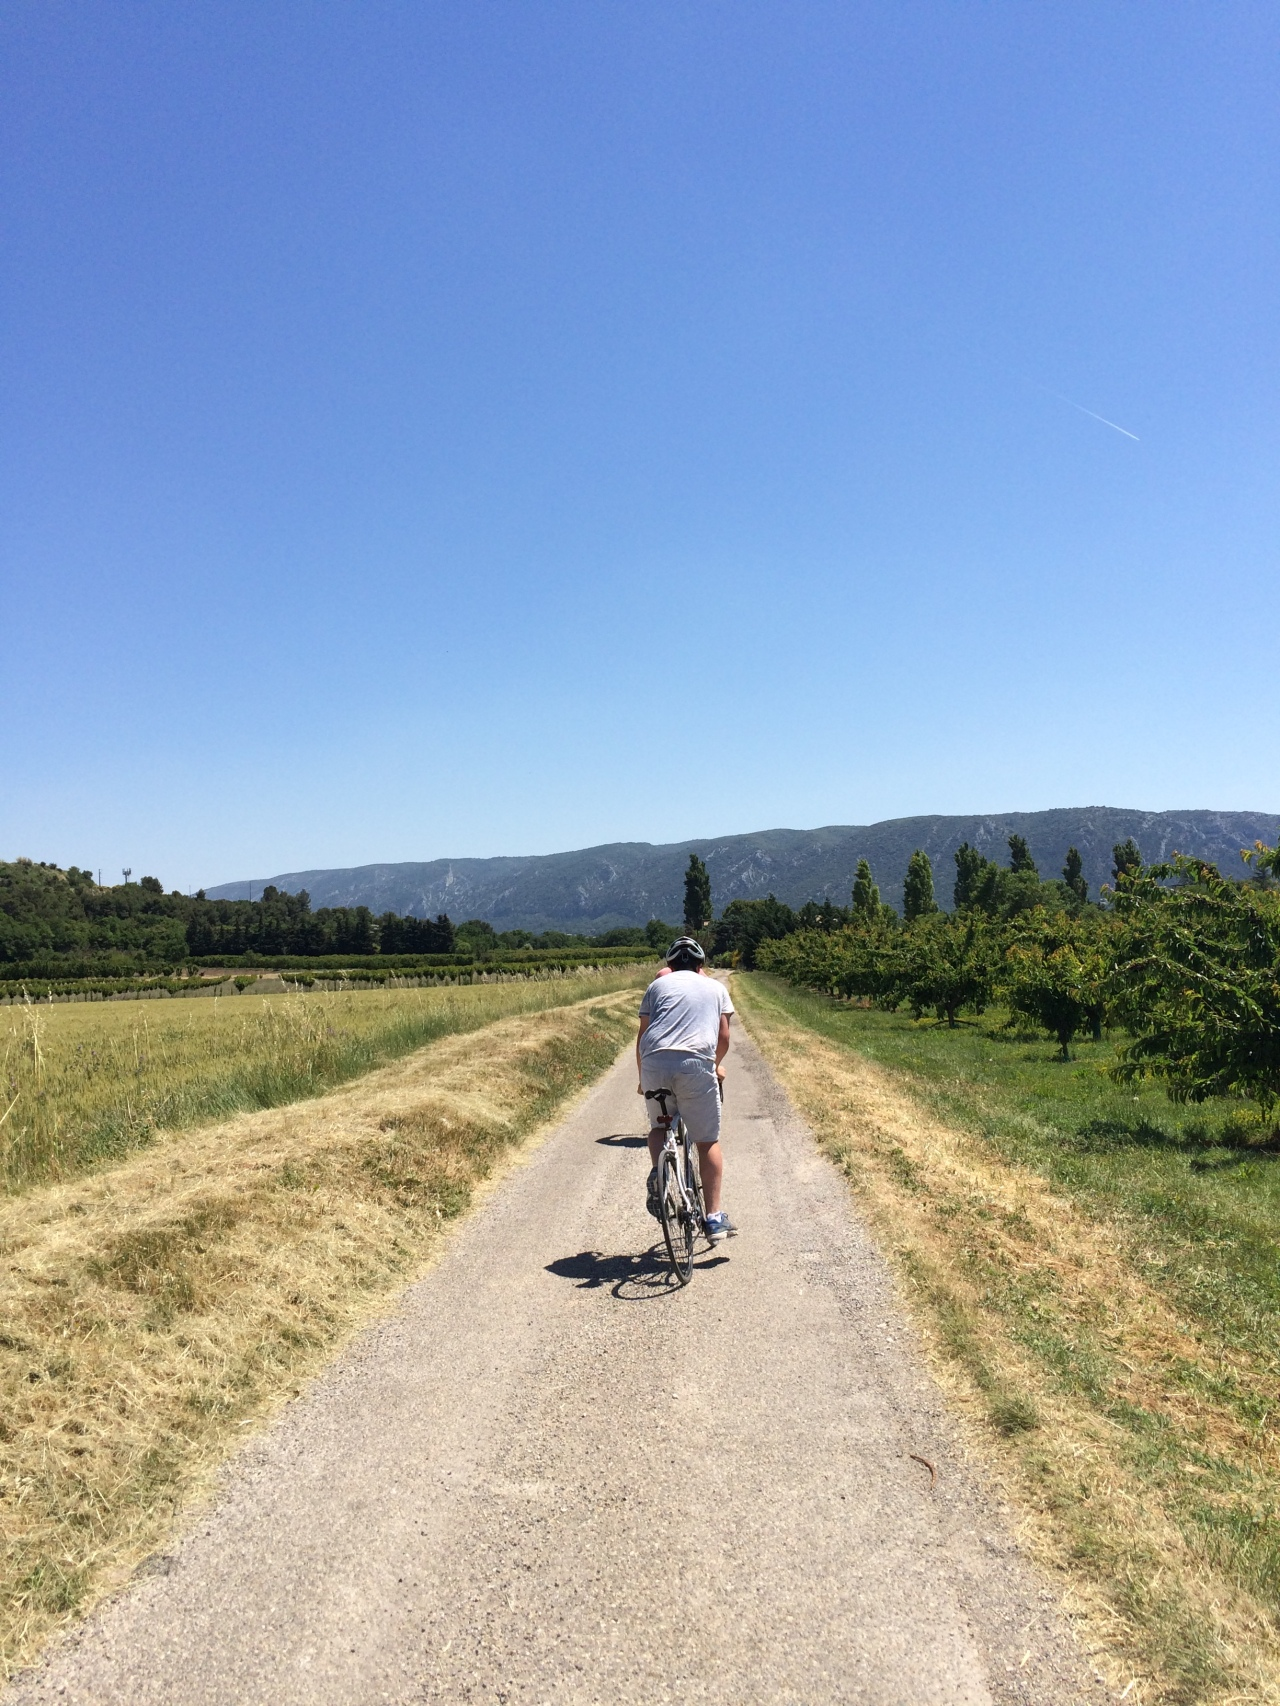 Two Weeks in Provence – Day 13 – A short cycle taking the wholeday